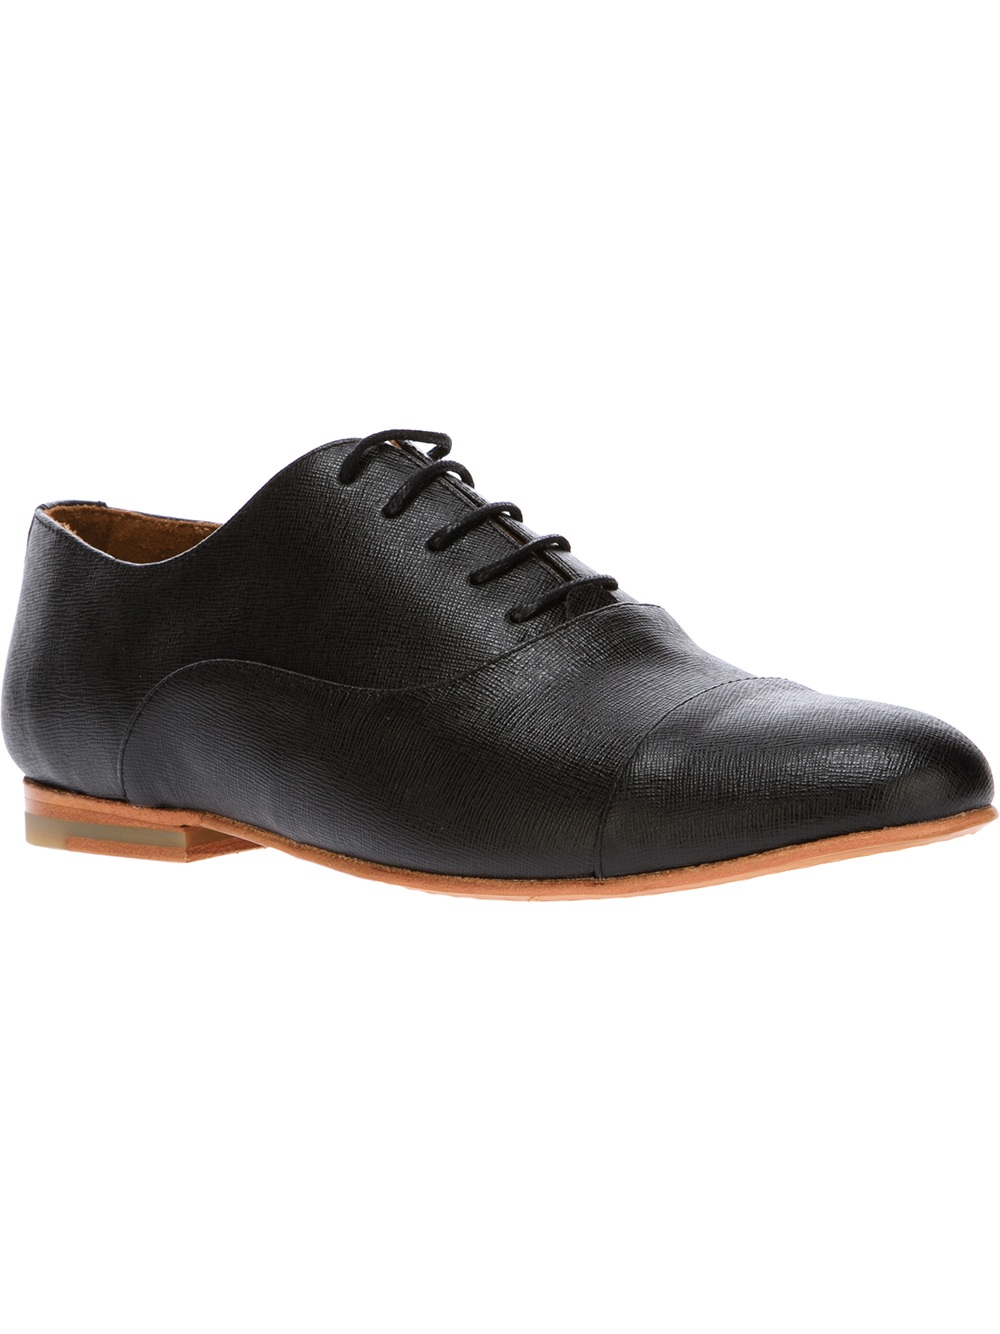 Shop The Online Shoe Store of Men's and Kids Collections at rutor-org.ga Includes Dress Shoes, Casual Shoes, Imperial, Boots, Comfortech, and Safety Shoes as well as Accessories. Receive Free Shipping on all Kids and Men's Shoes online over $